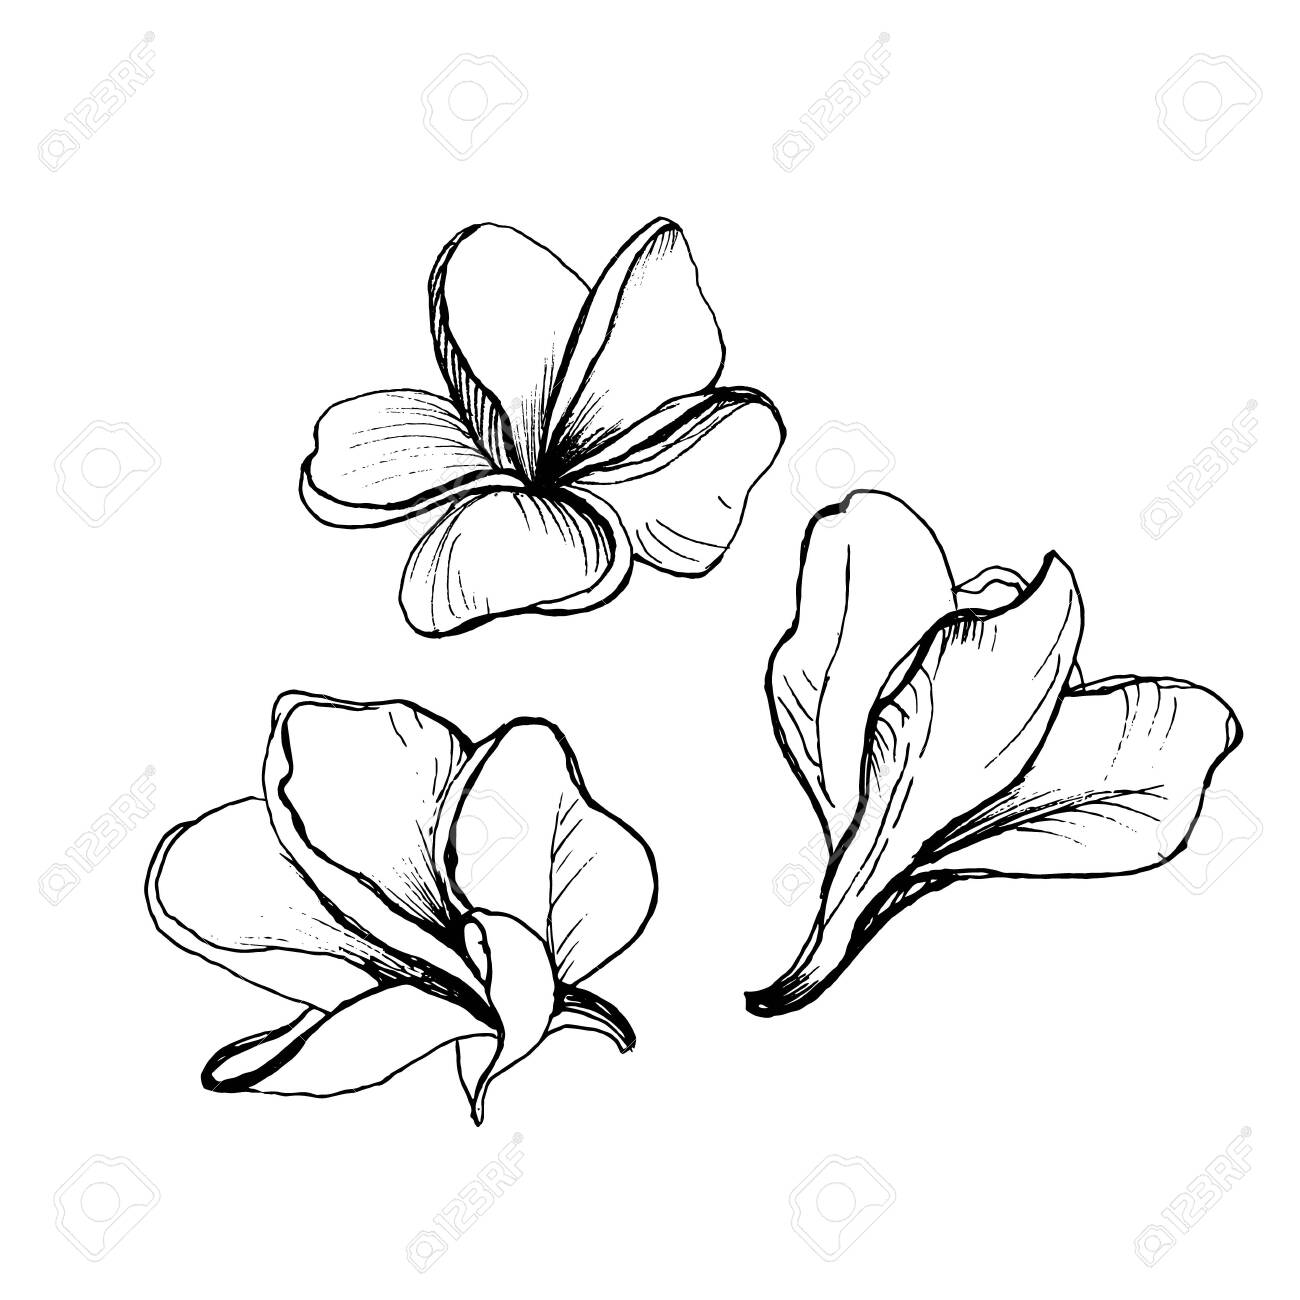 Hand Drawing Set Of Plumeria Flowers Outline Sketch Isolated Royalty Free Cliparts Vectors And Stock Illustration Image 136398580